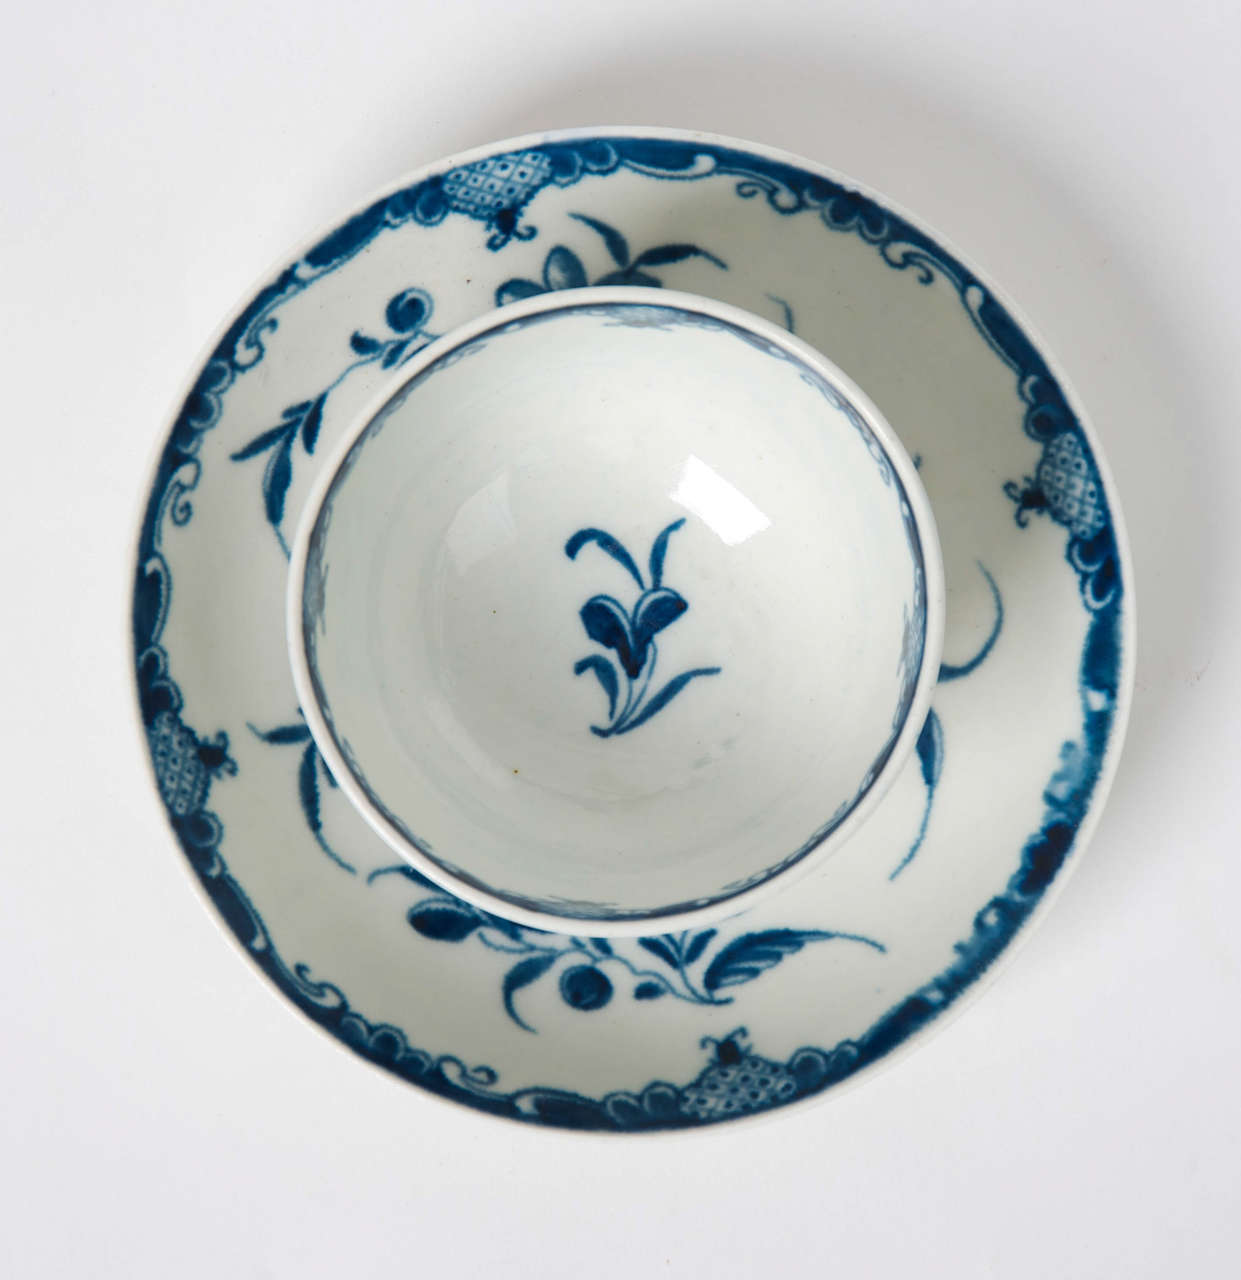 Hand-Painted First Period Worcester Porcelain Tea Bowl and Saucer Mansfield Pattern, Ca 1765 For Sale